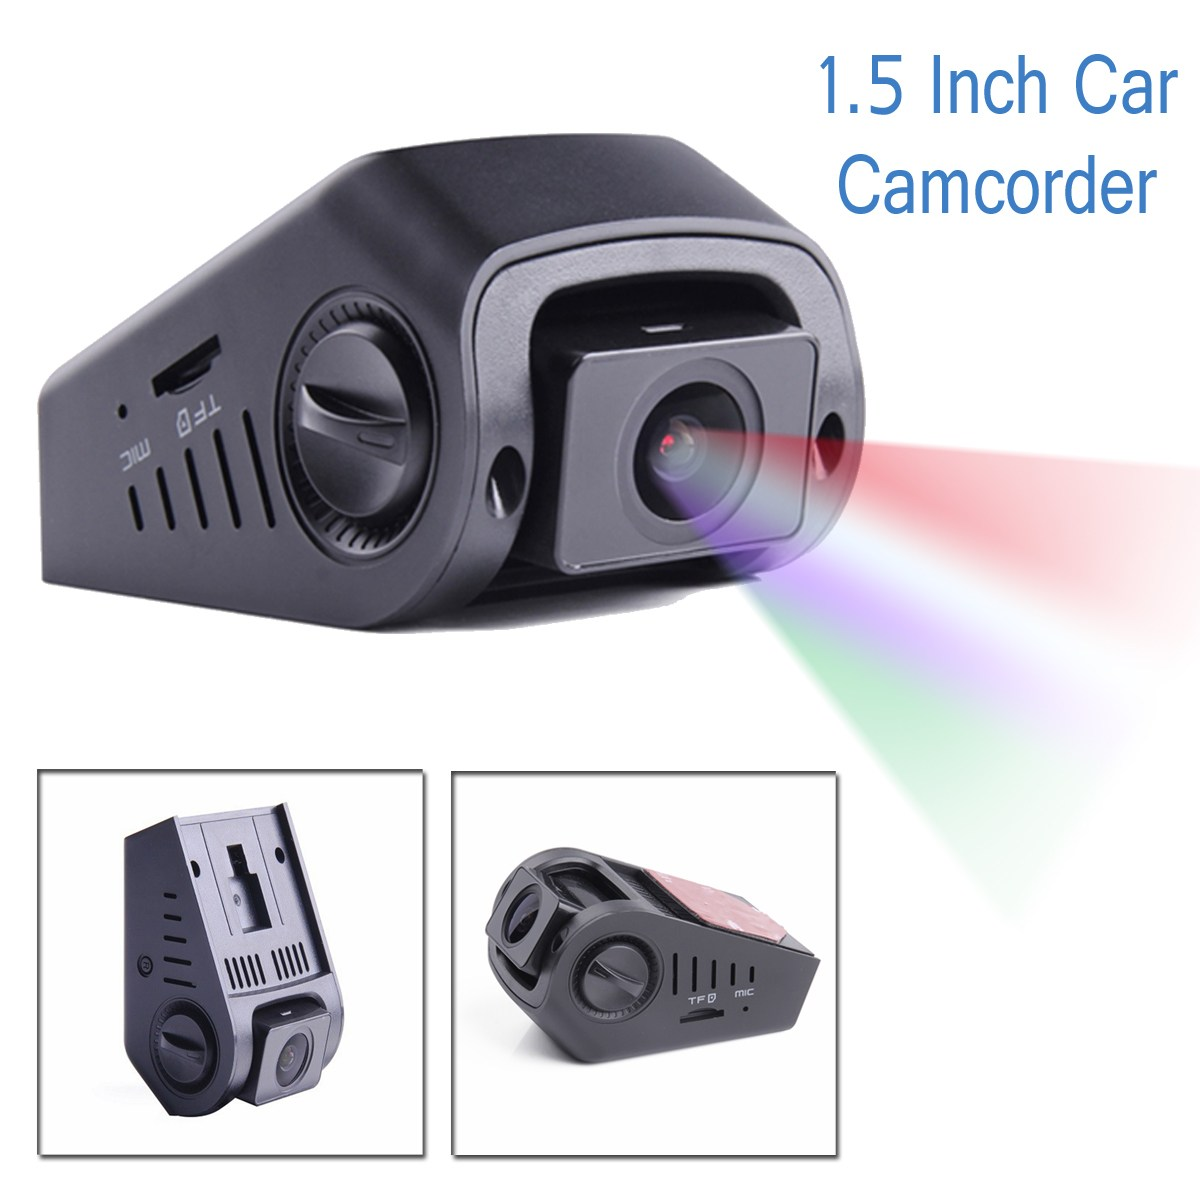 A118C2 V2 Version DVR 1.5 Inch Car Camcorder 1080P Car Recorder With GPS Module for Car Wide Dynamic Range Capability